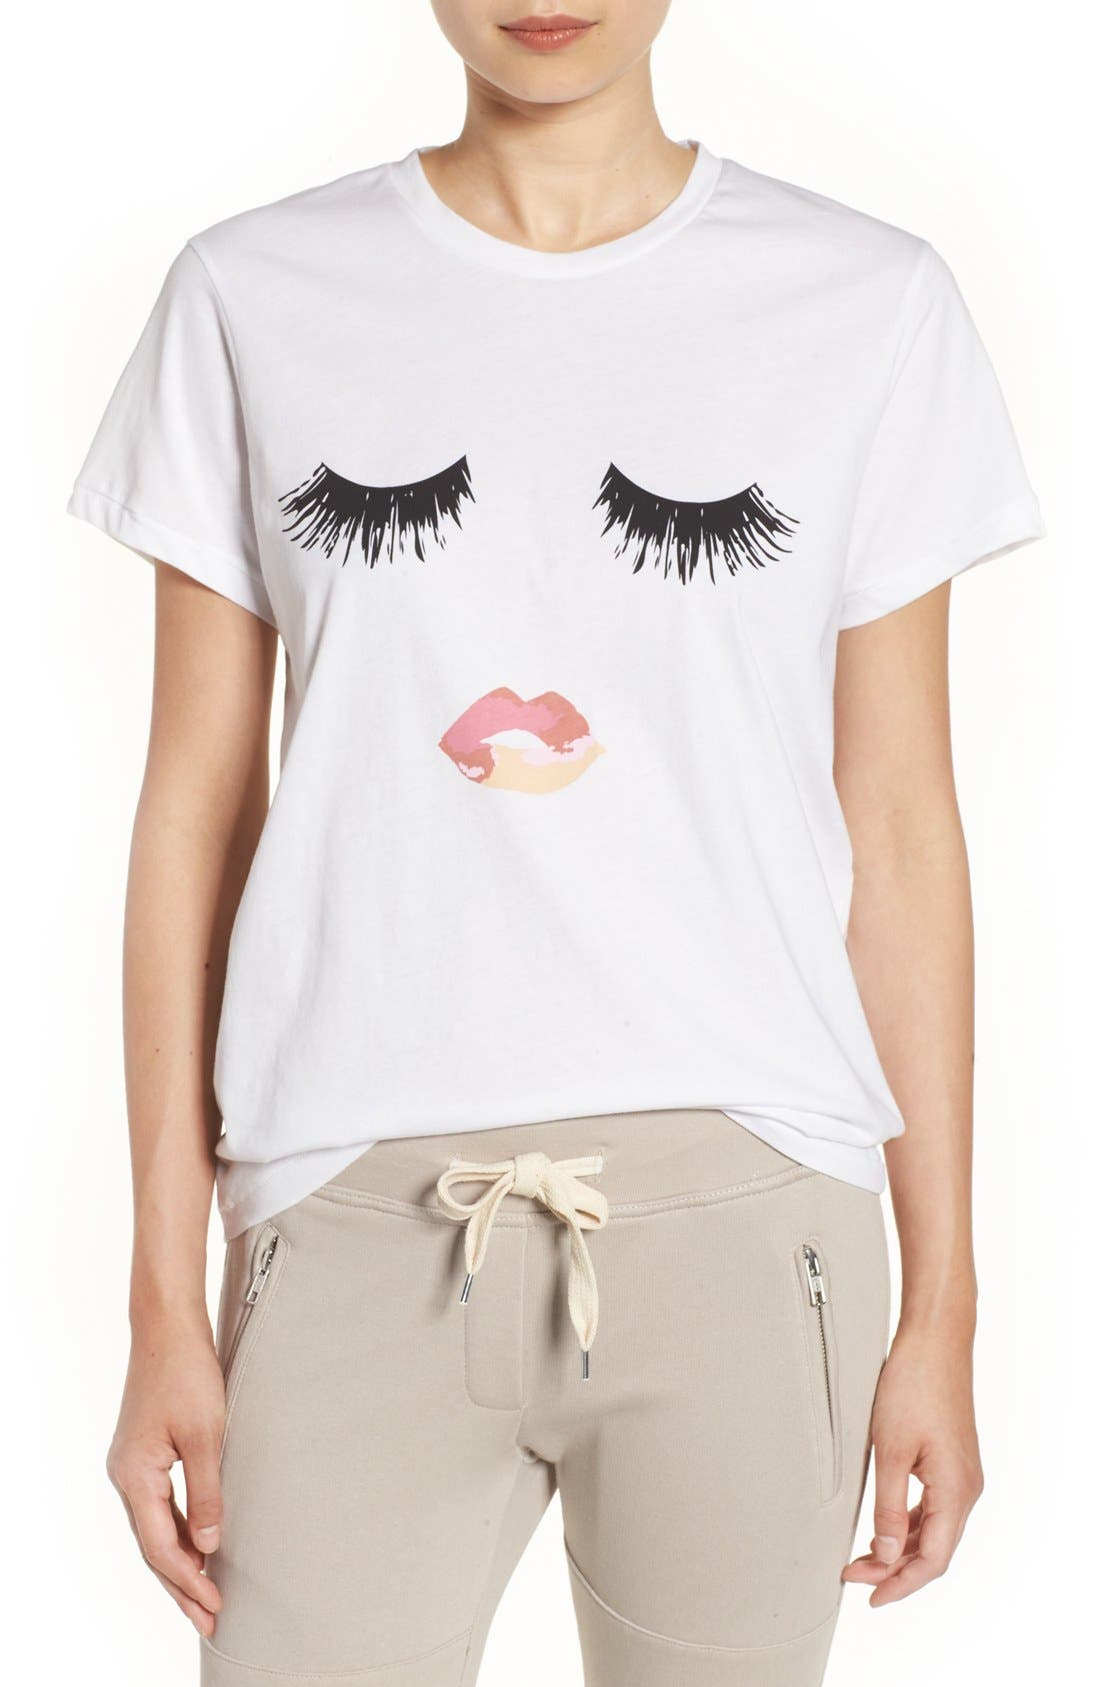 Main Image - Sincerely Jules 'Lips & Lashes' Graphic Tee